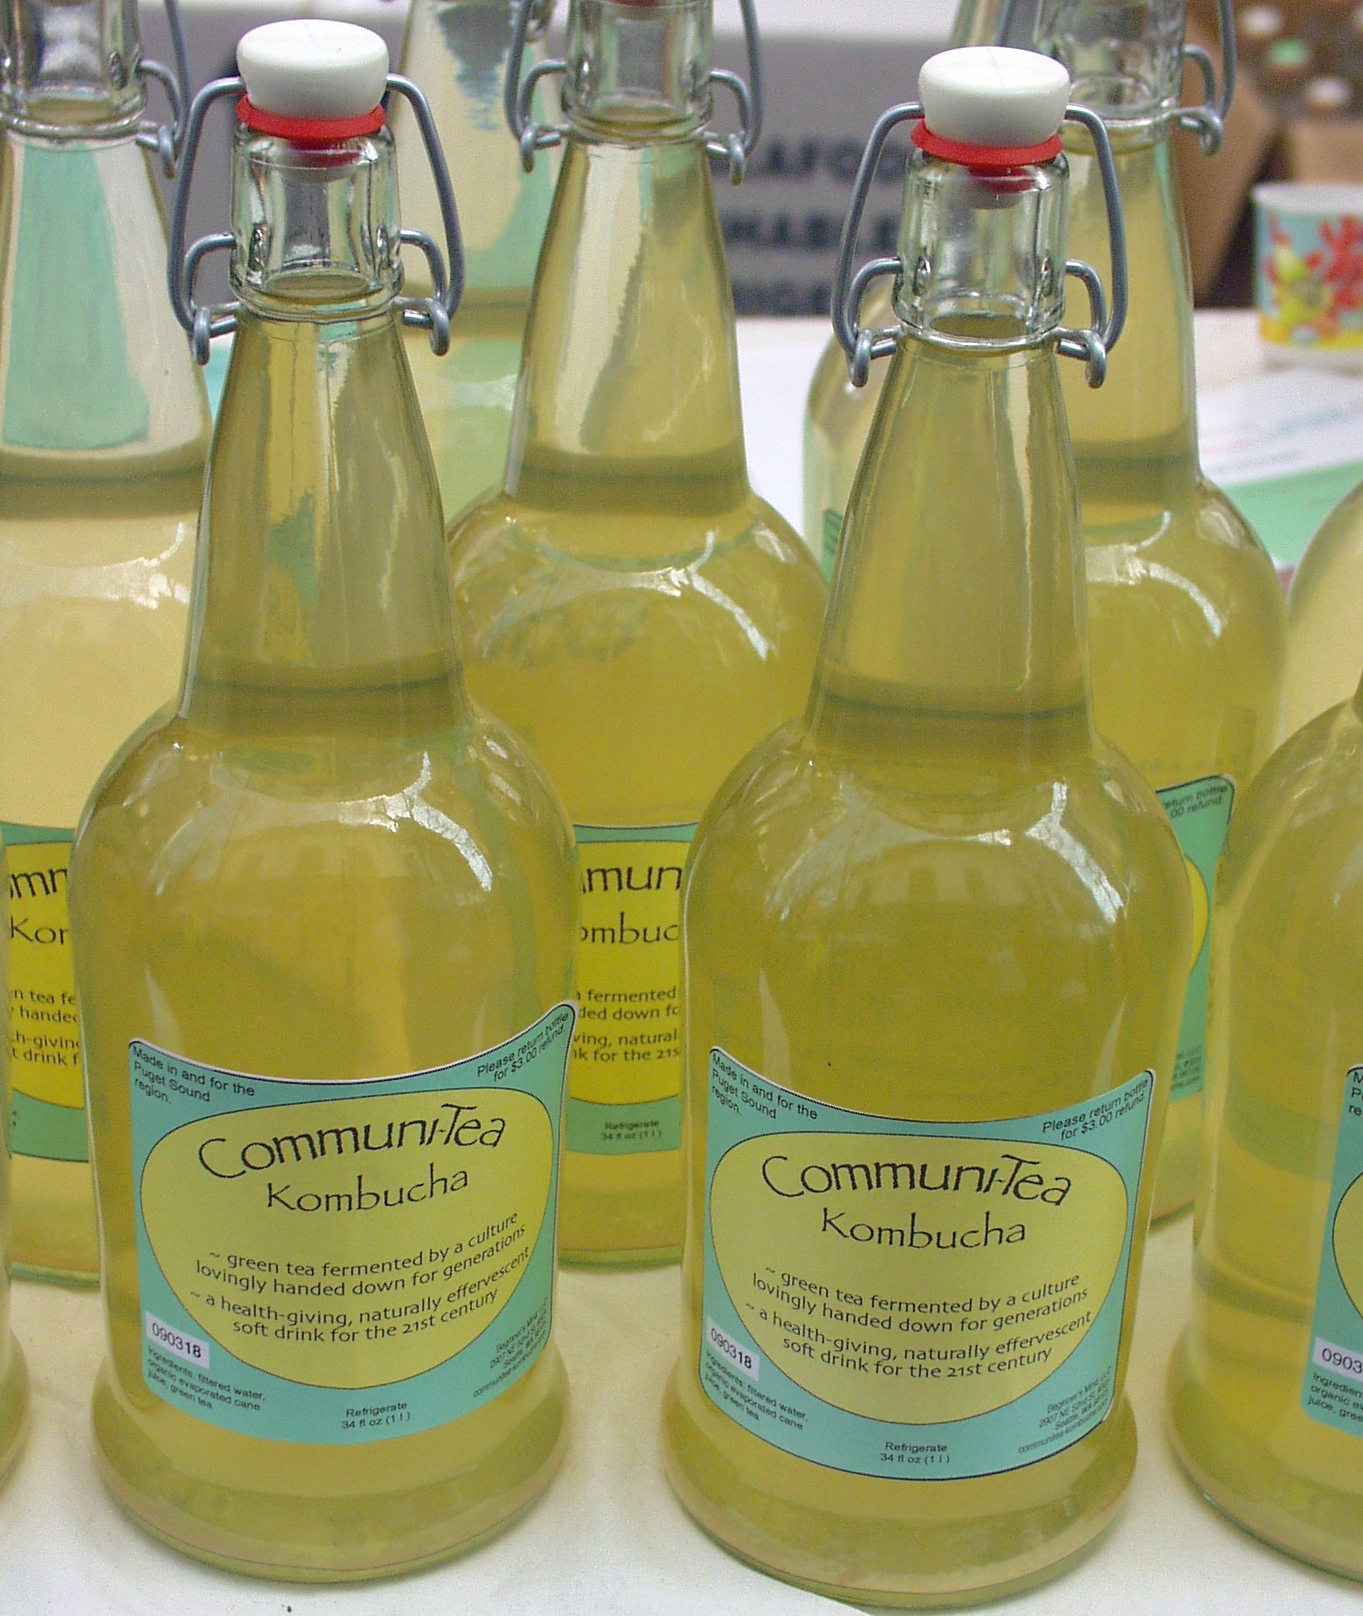 Communi-Tea Kombucha is sold in earth-friendly reusable bottles. Photo copyright 2009 by Zachary D. Lyons.